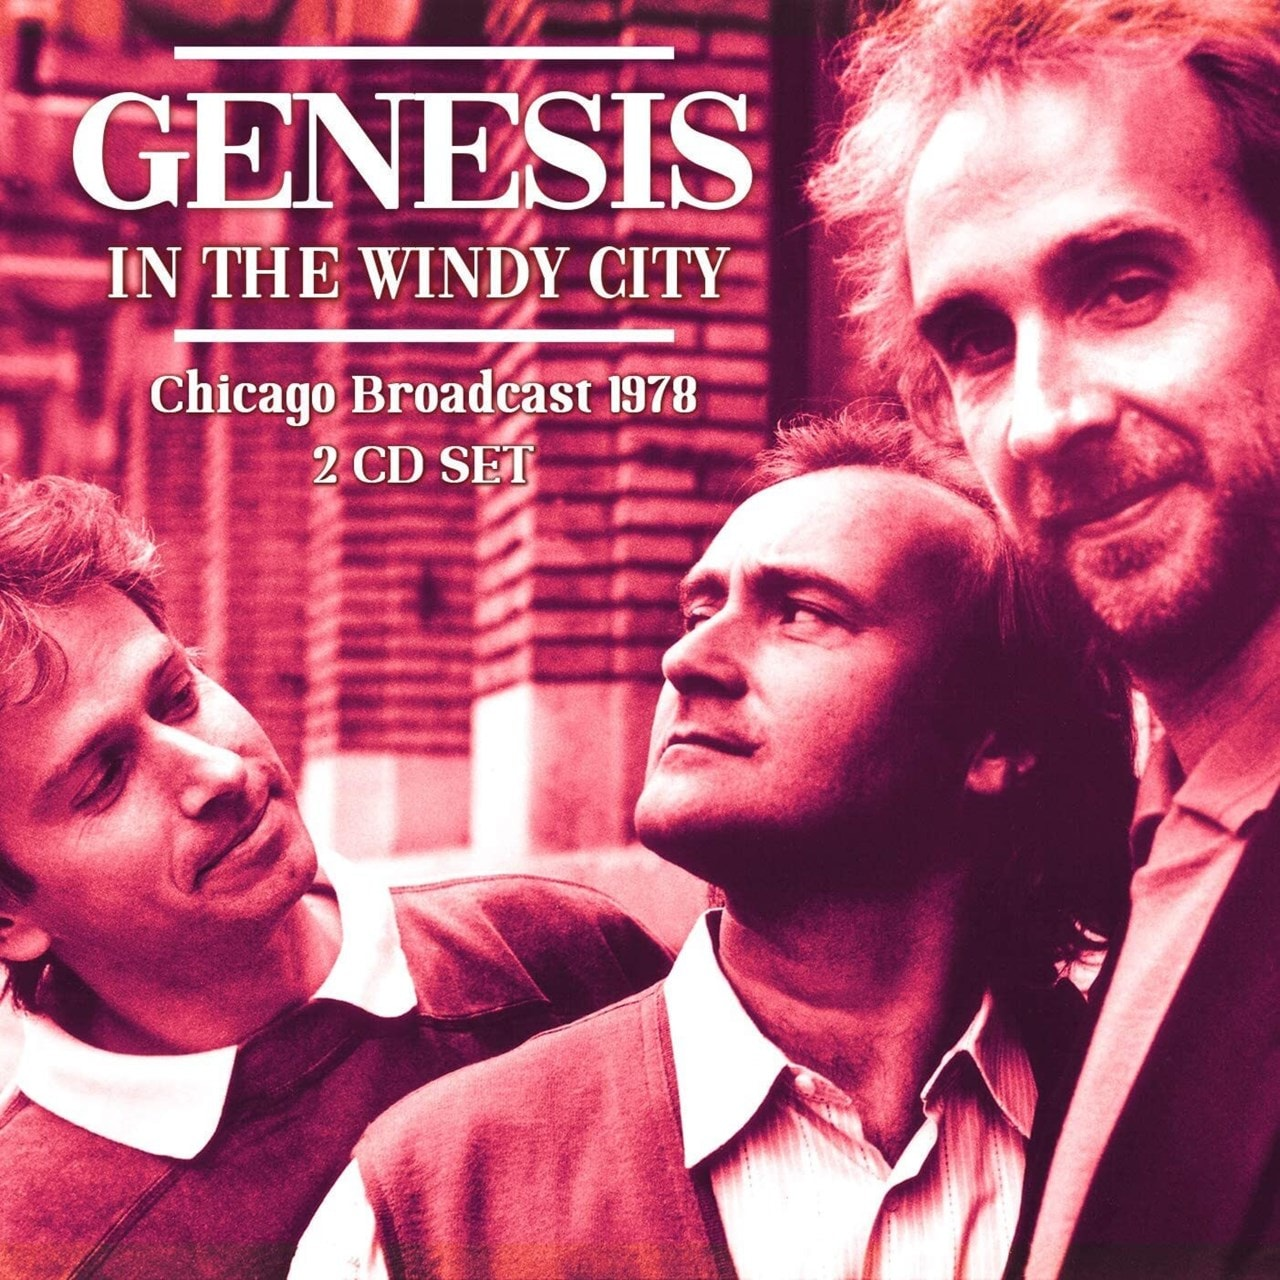 In the Windy City: Chicago Broadcast 1978 - 1